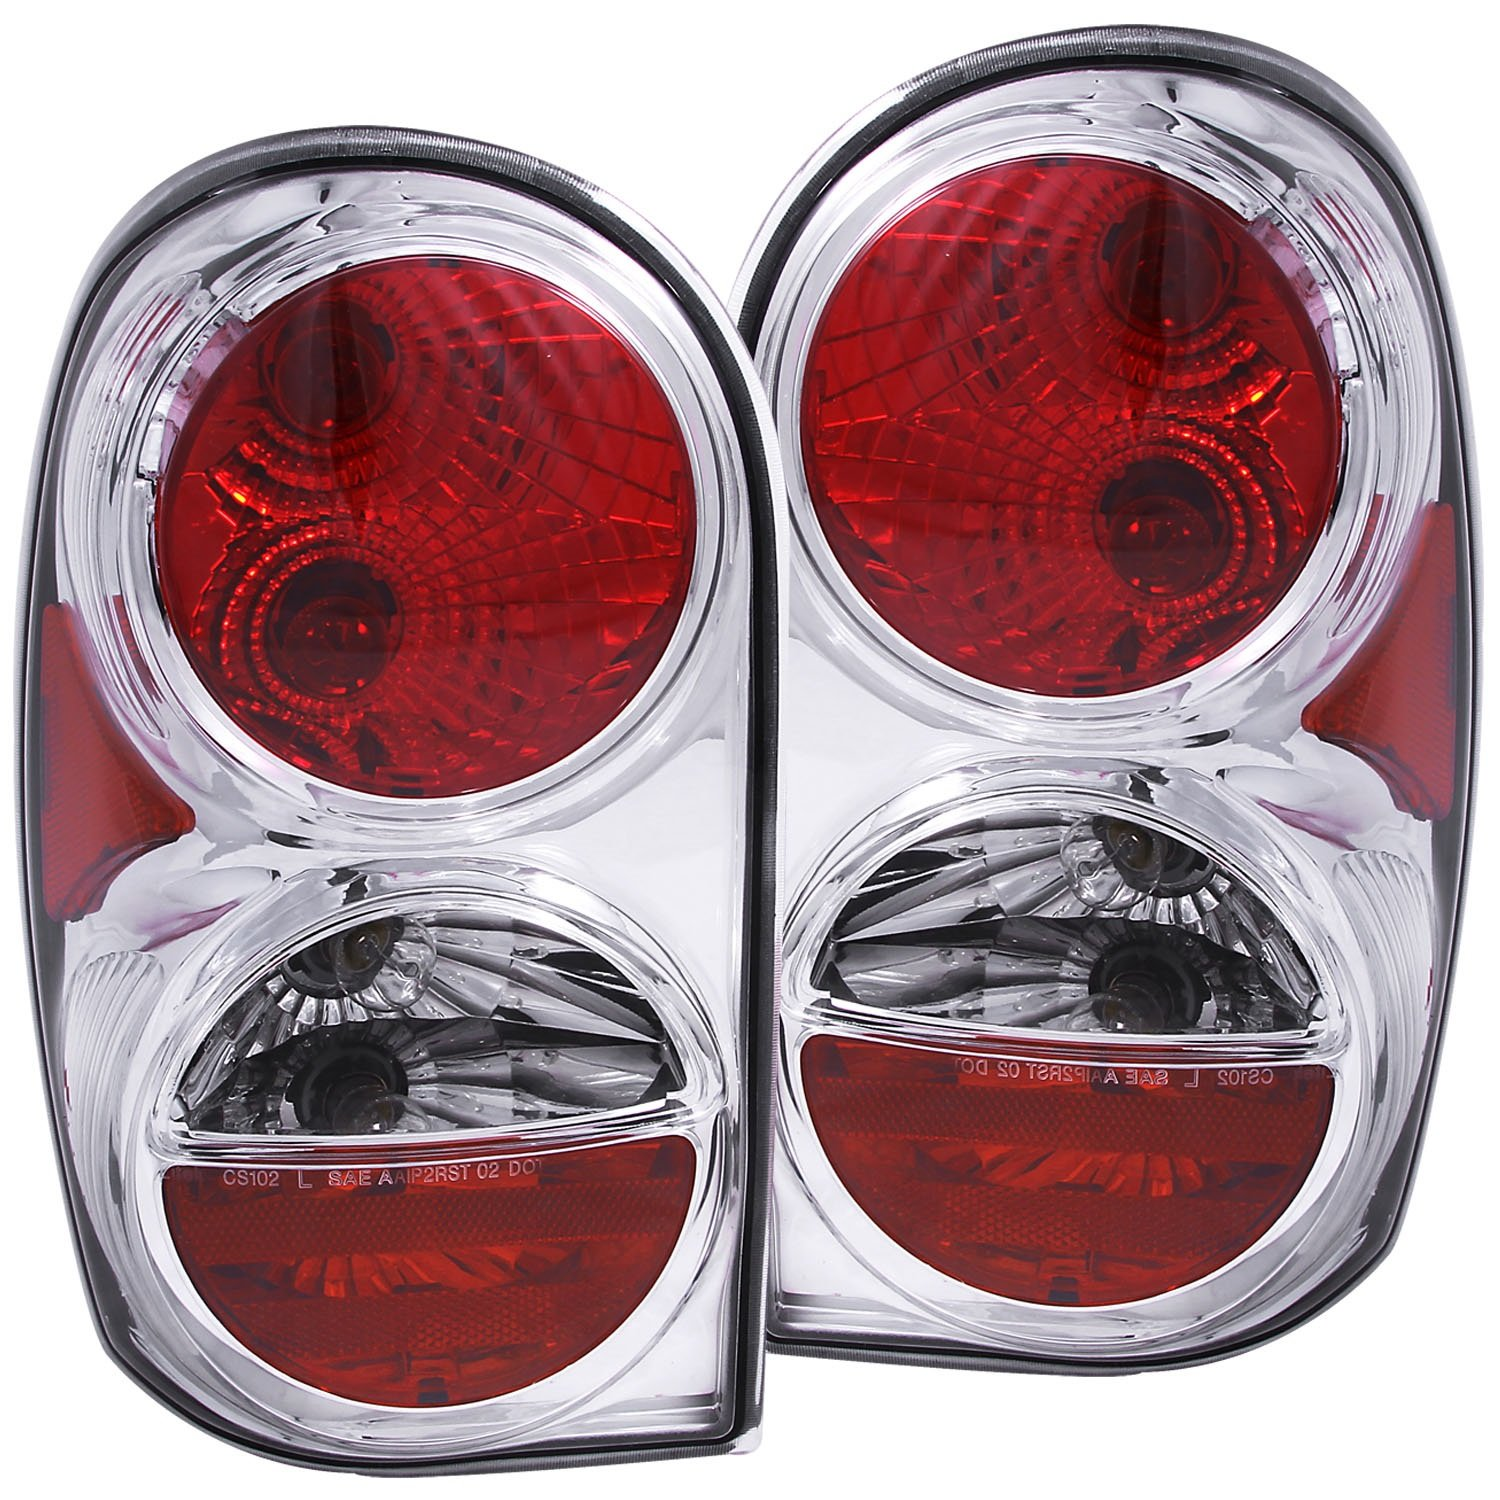 AnzoUSA 221195 Smoke Taillight for Jeep Liberty Sold in Pairs Anzo USA